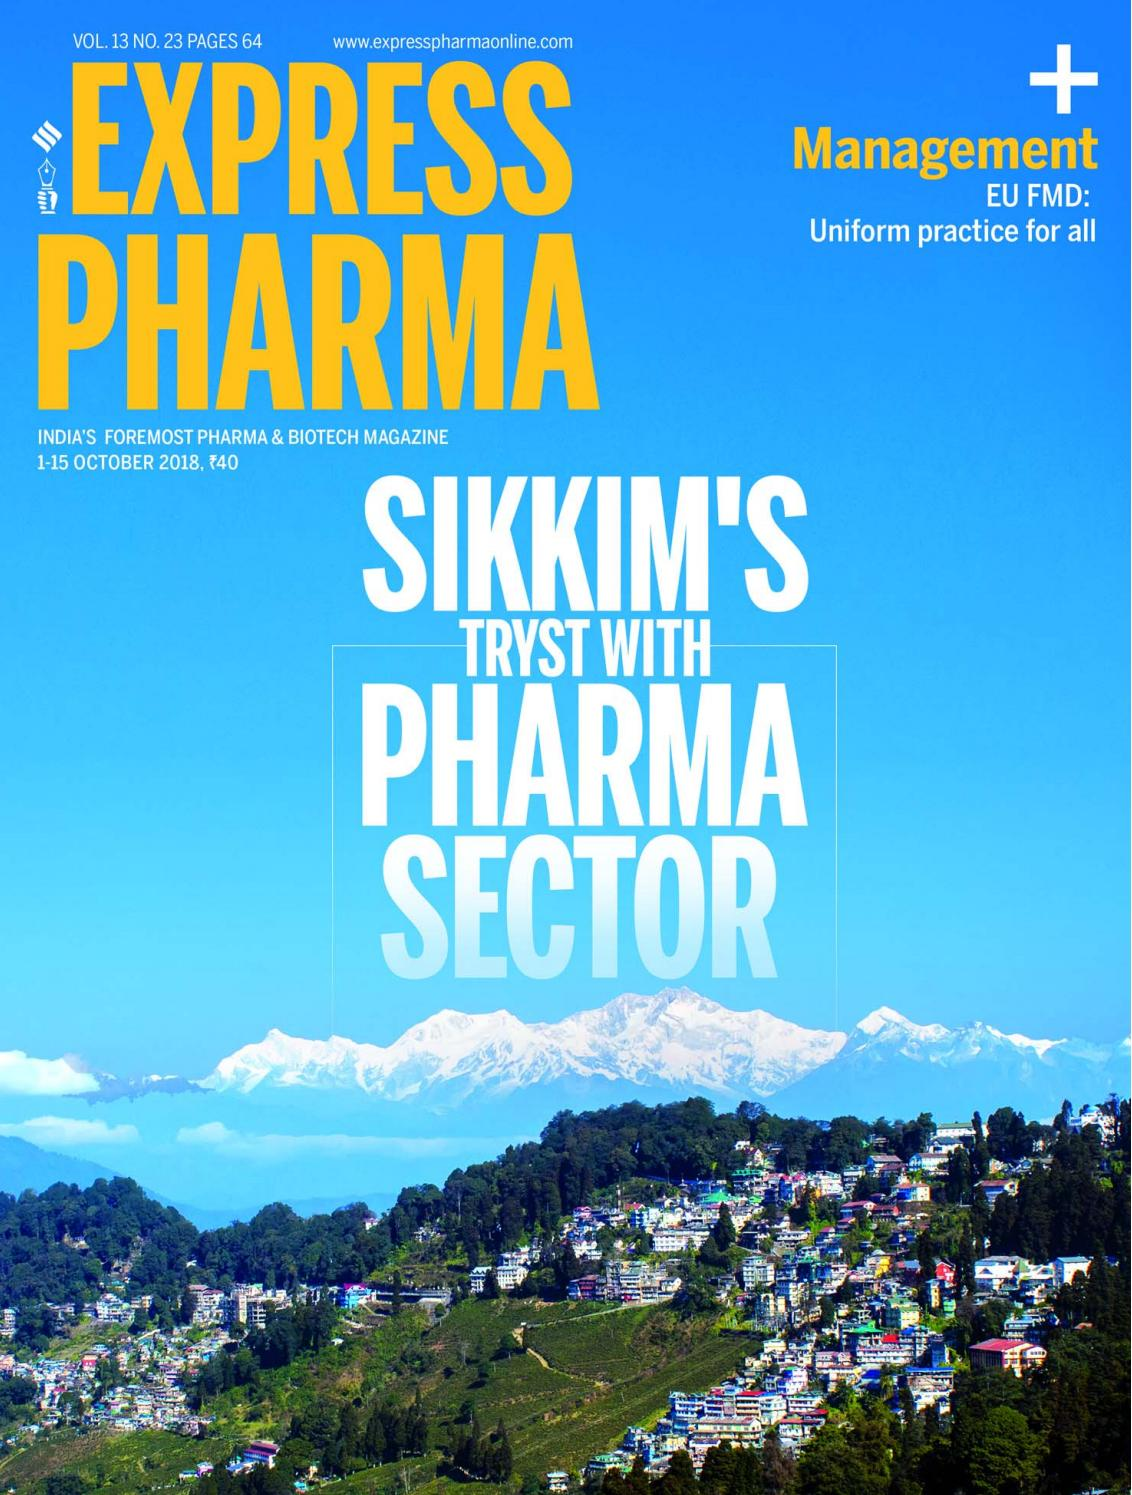 Express Pharma (Vol 13, No 23) October 01-15, 2018 by Indian